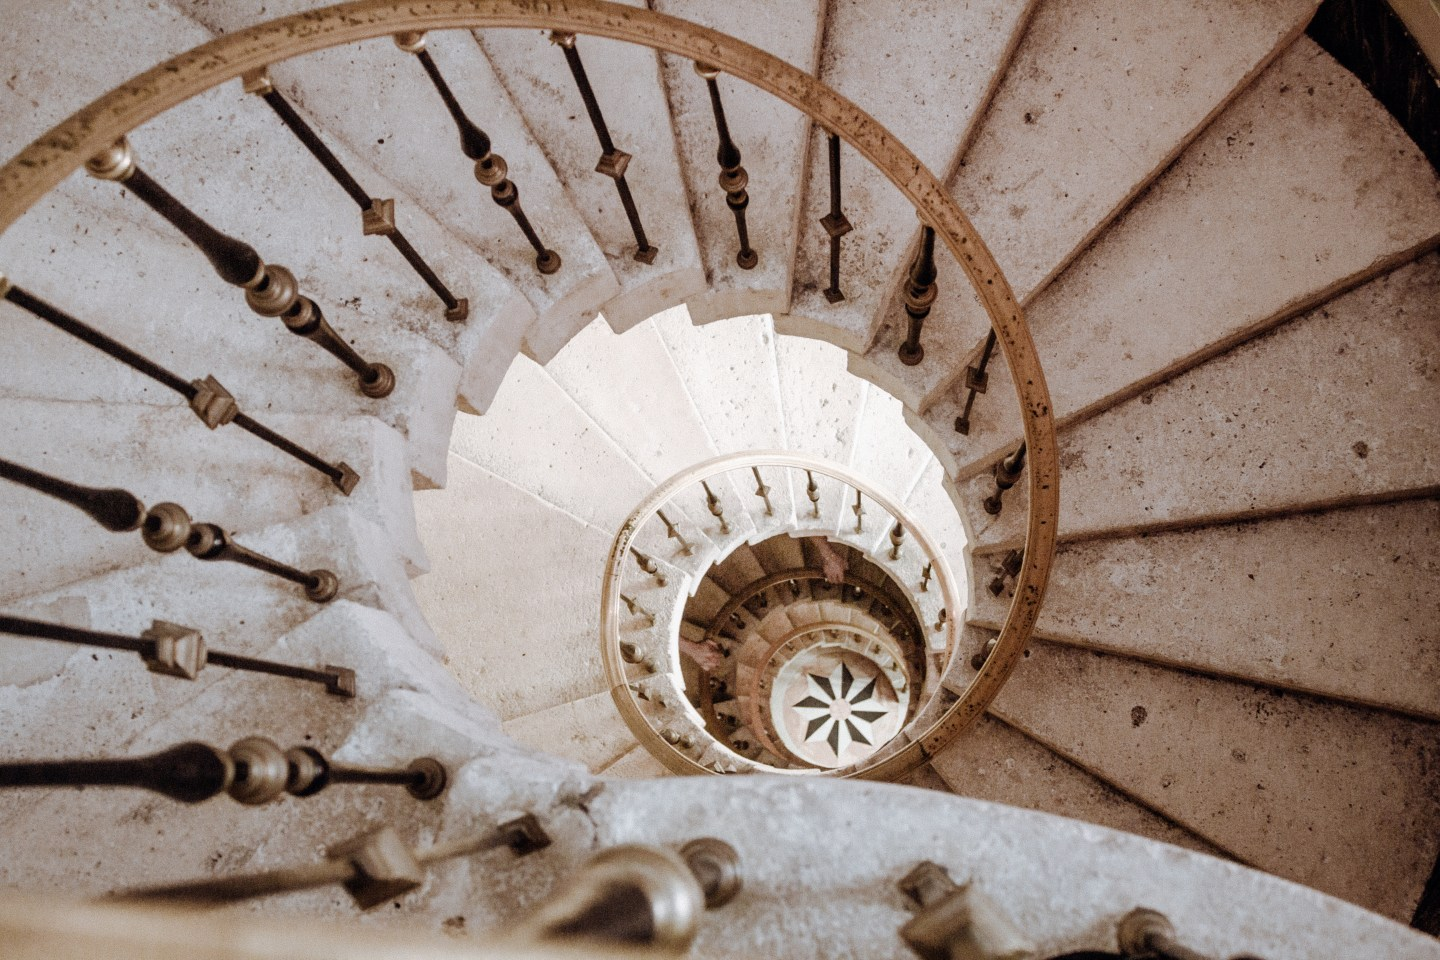 Illustrated by Sade - Stunning marble spiral staircase at Vizcaya Museum and Gardens